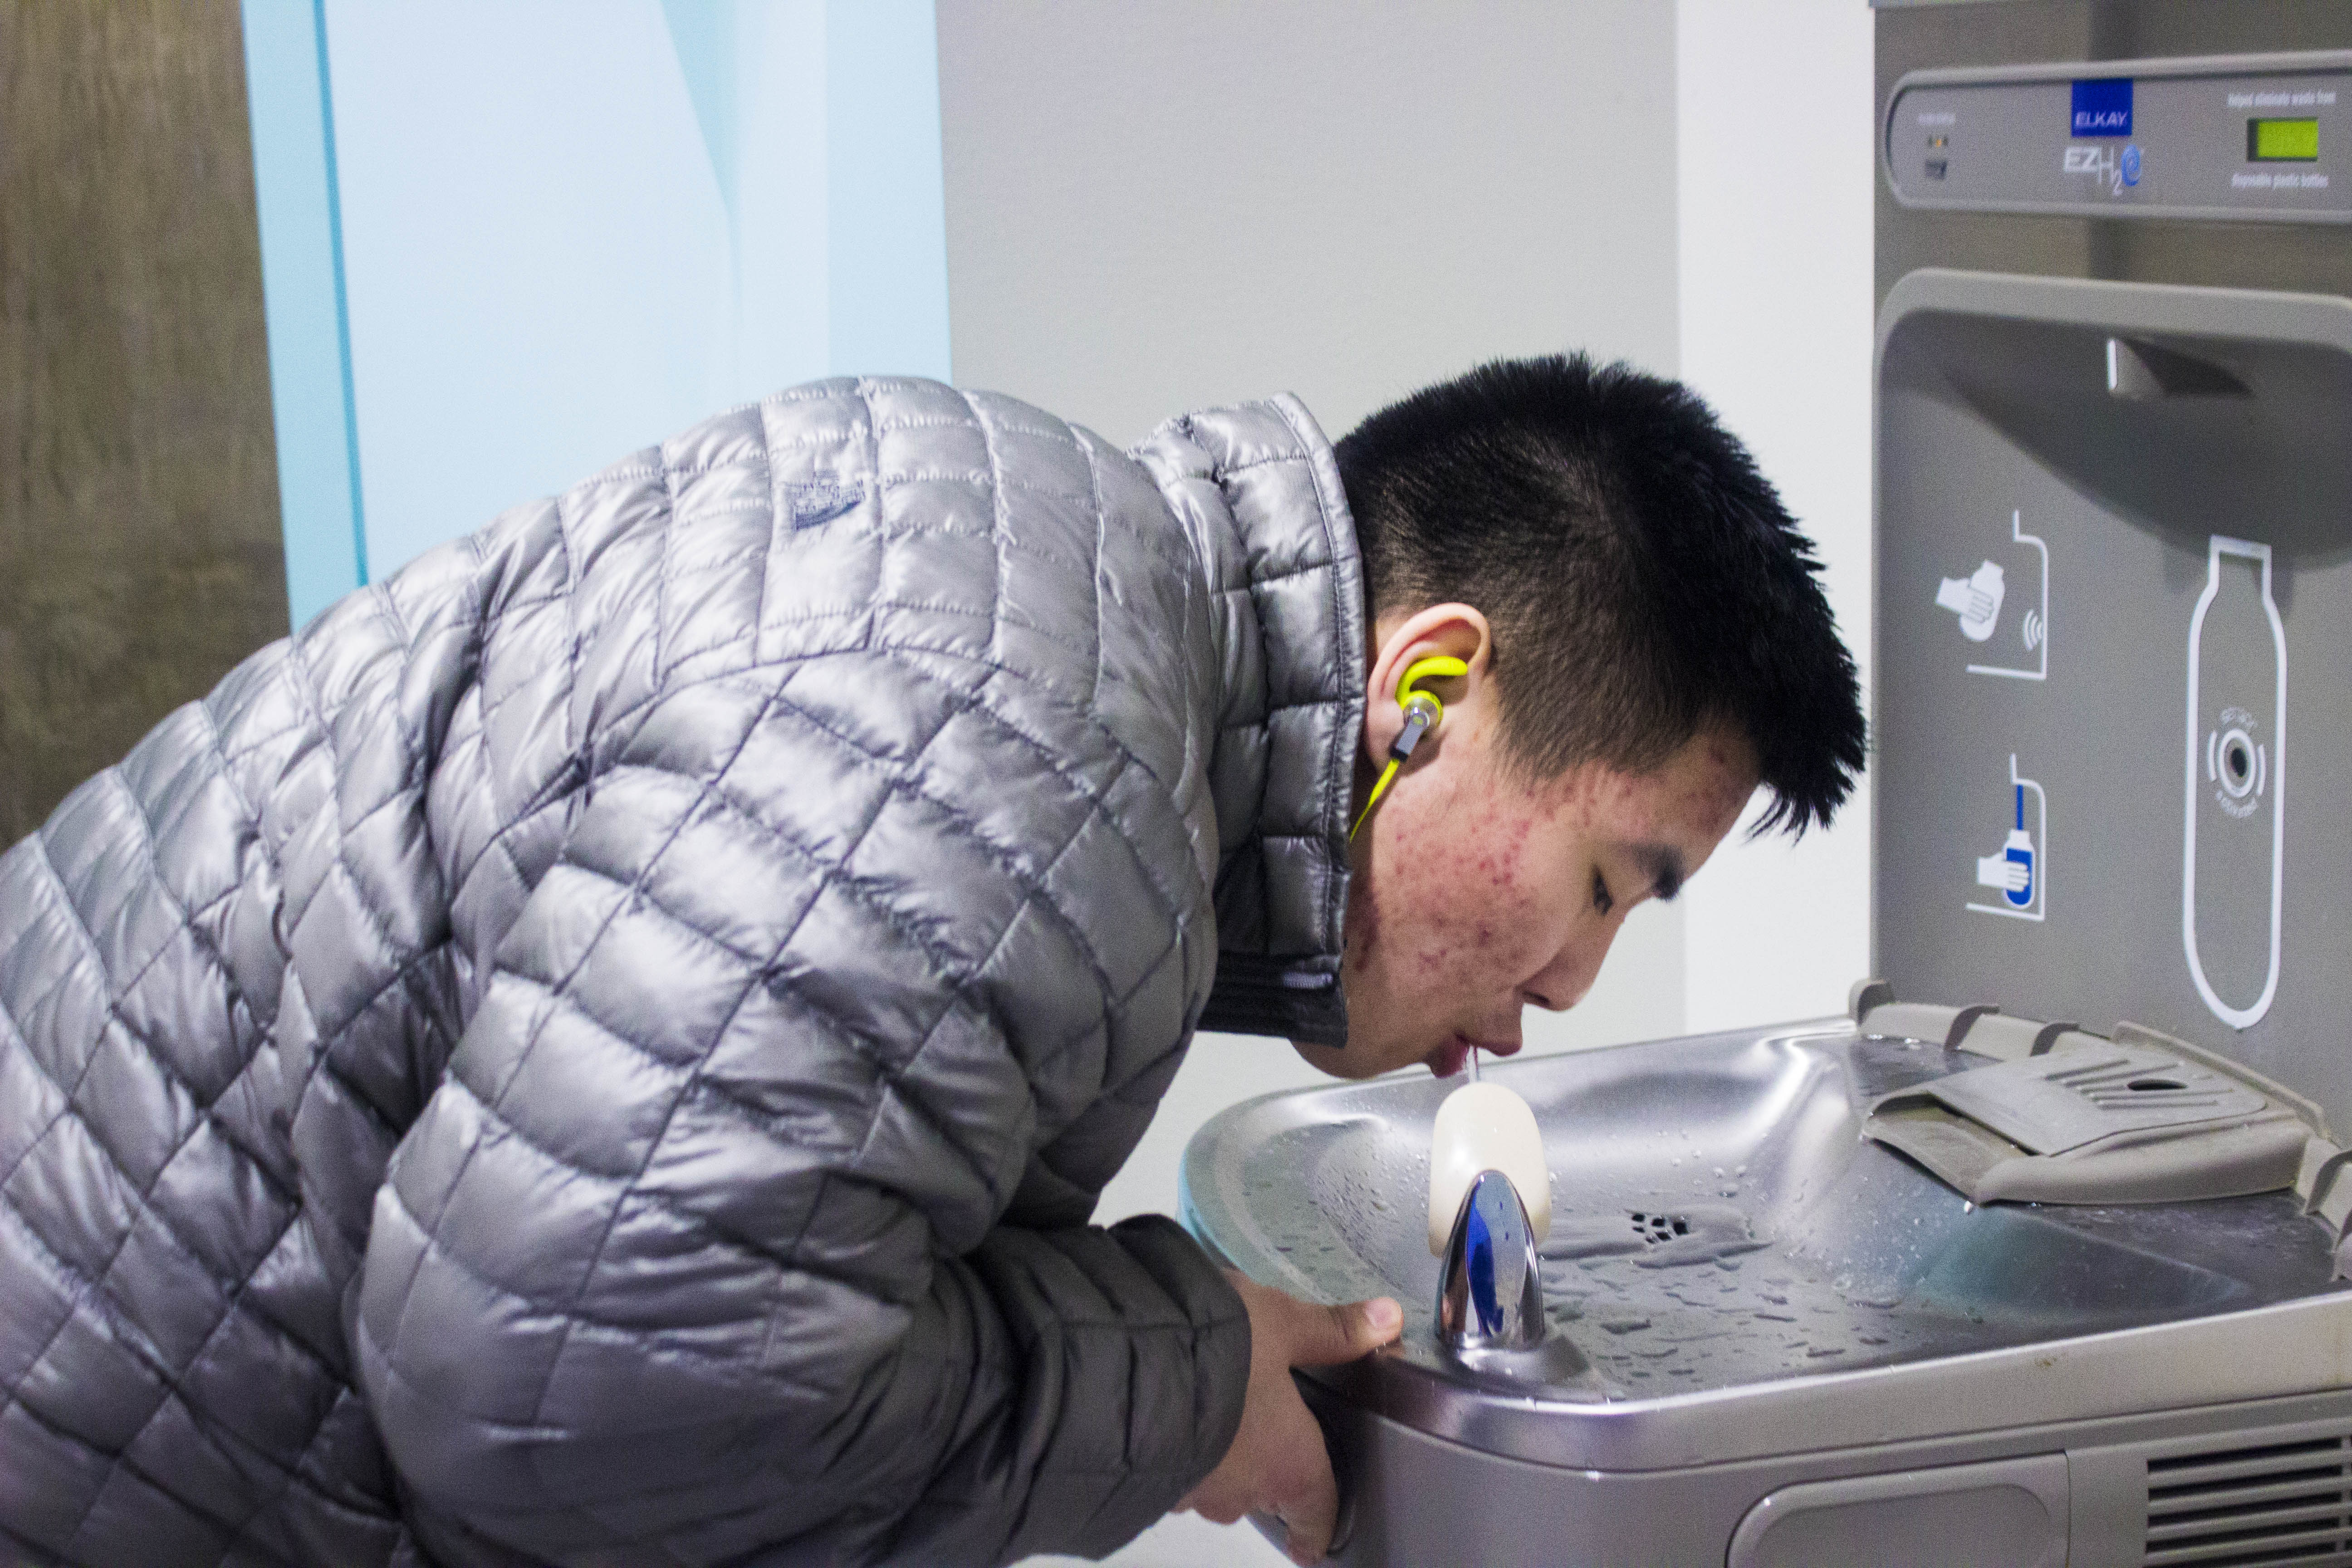 Freshman Moses Sohn drinks water from the water fountain that's located next to Dine 49. - Zayn Roohi / Photo Editor